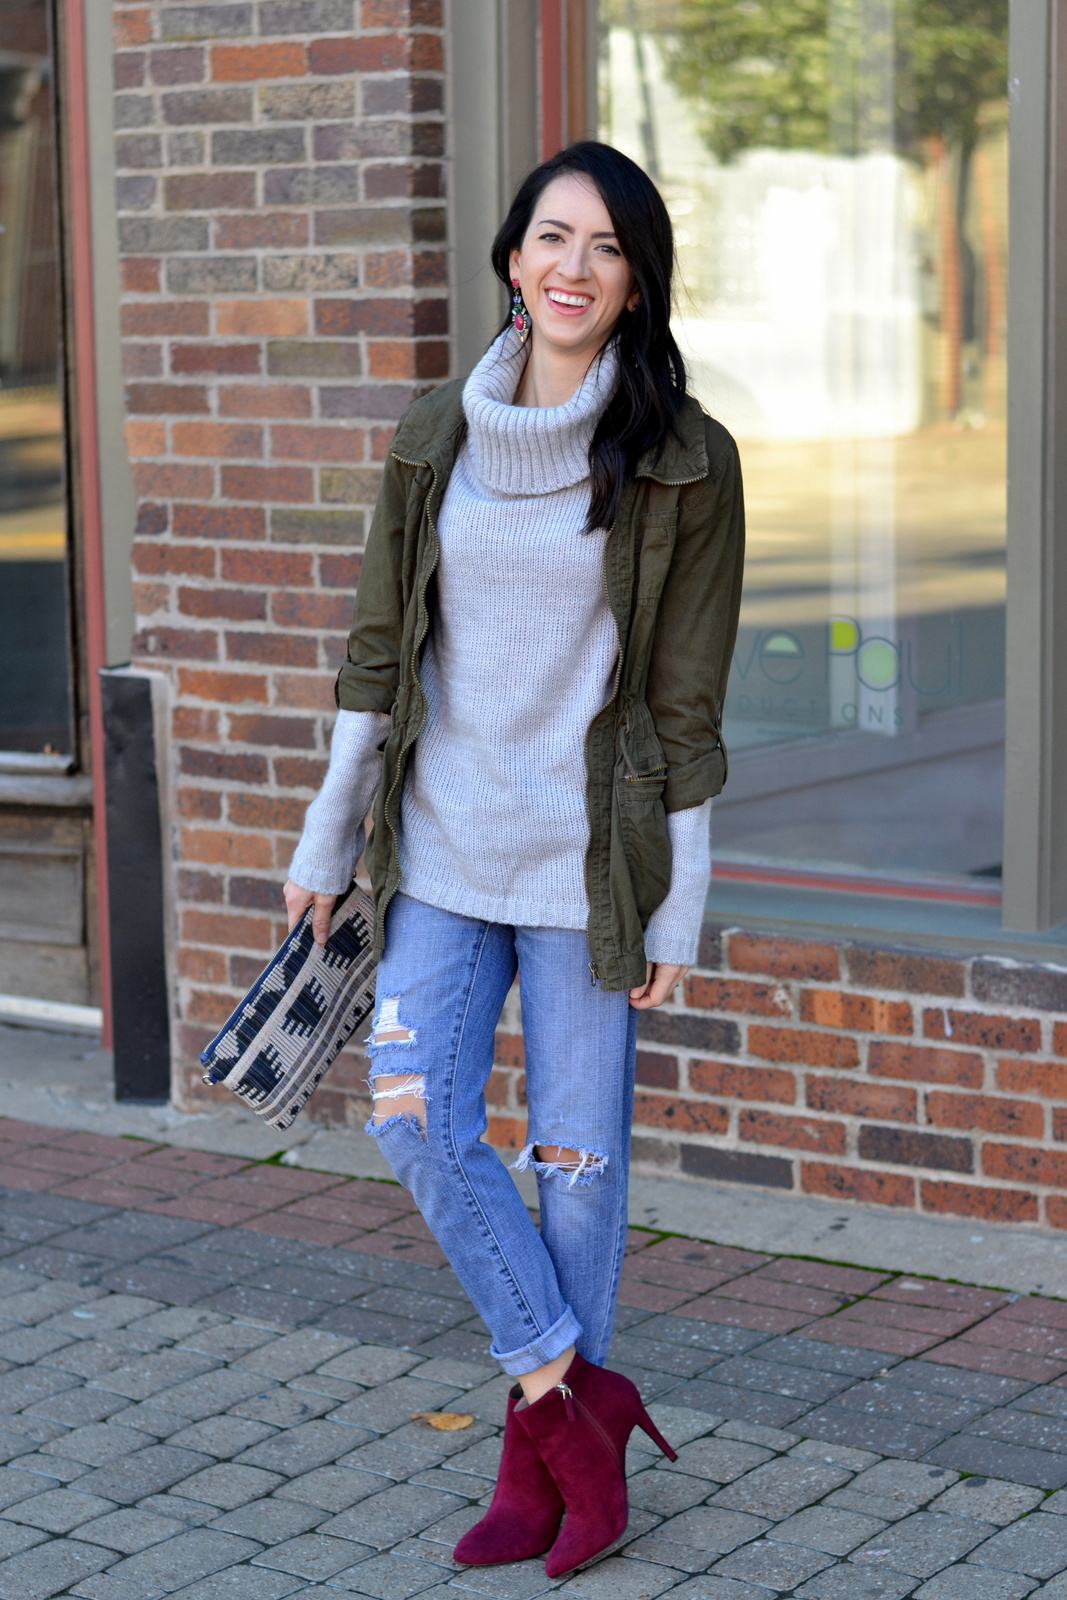 Fall Sweater_Olive Jacket_Fall Layers_Booties